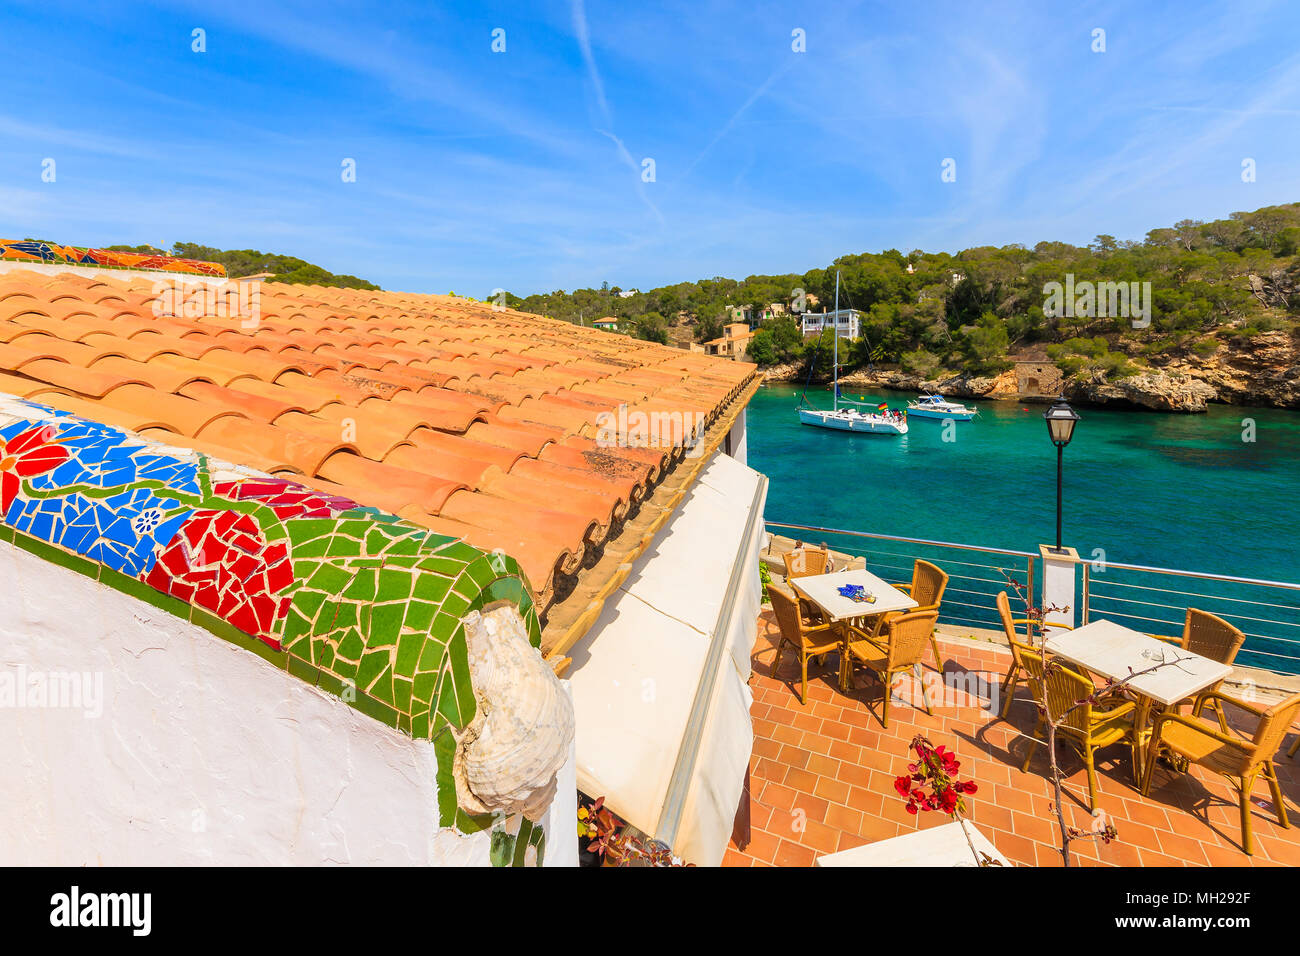 CALA FIGUERA BAY, MAJORCA ISLAND - APR 16, 2013: Tables on terrace of coastal restaurant located in beautiful village. Balearic islands are most visit - Stock Image